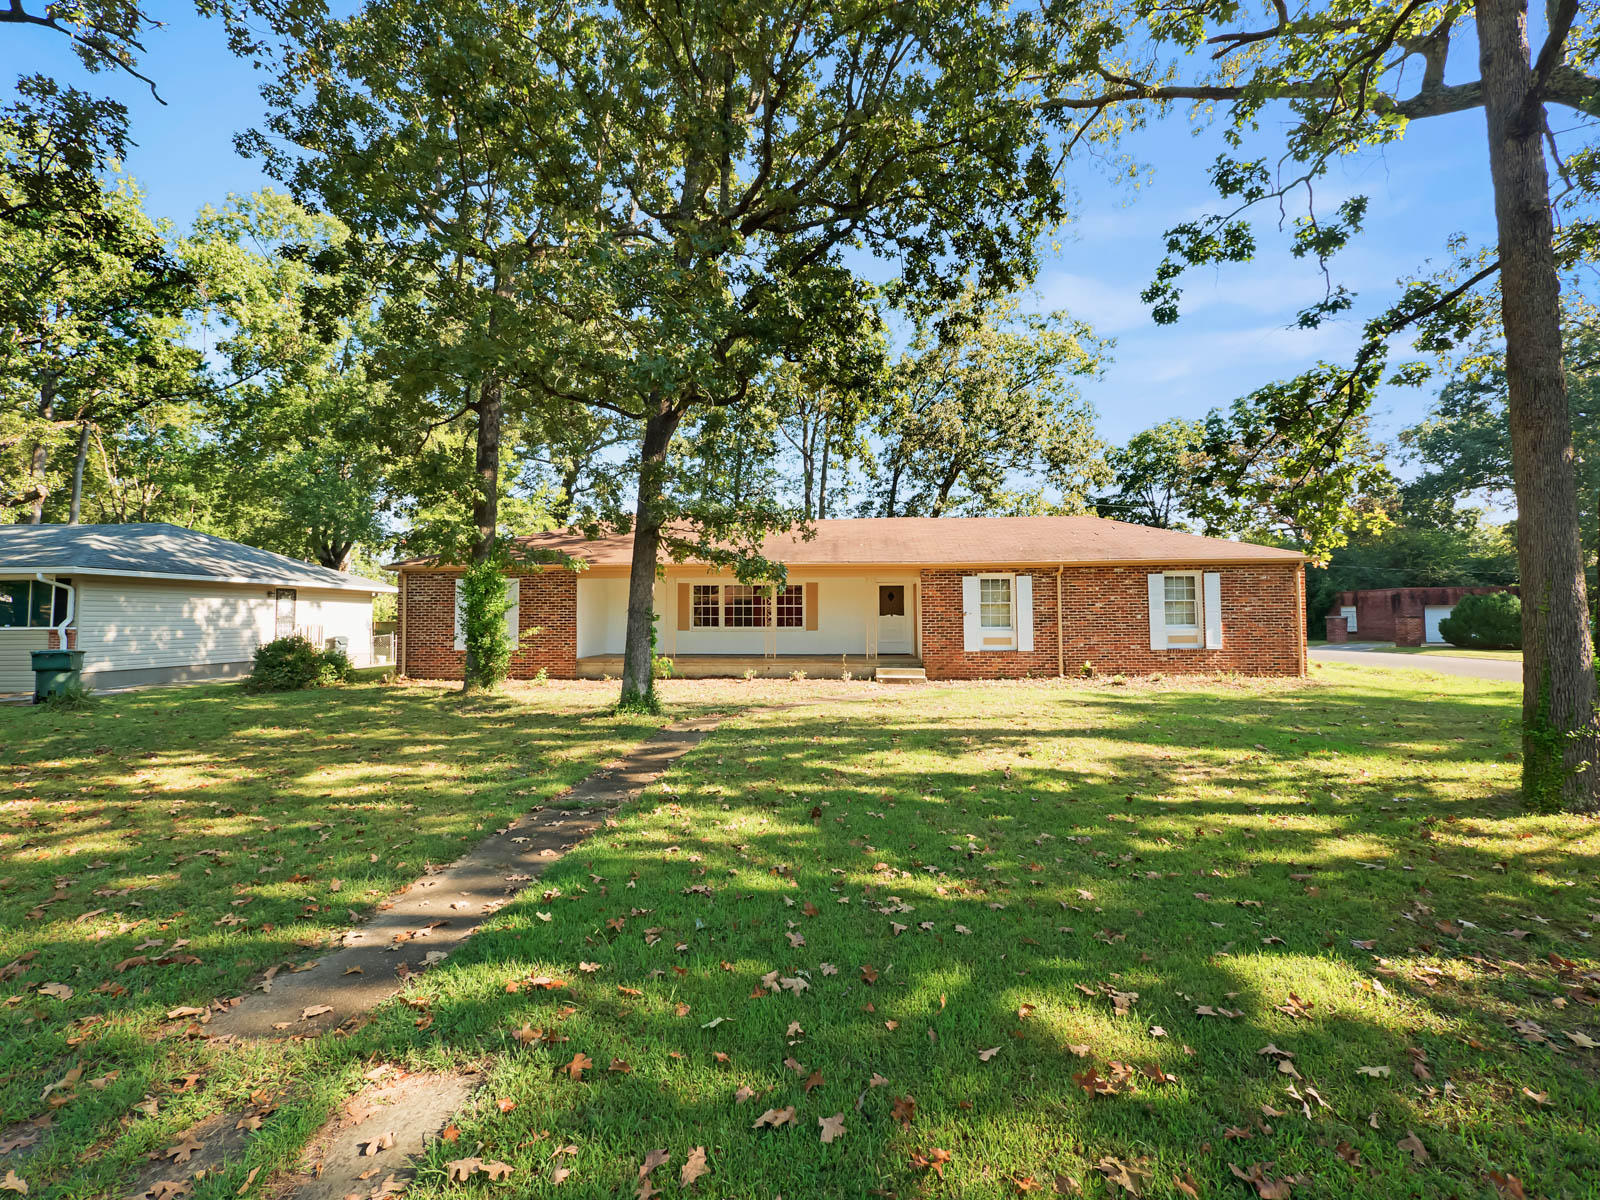 5533 Pinelawn Ave, Chattanooga, TN 37411